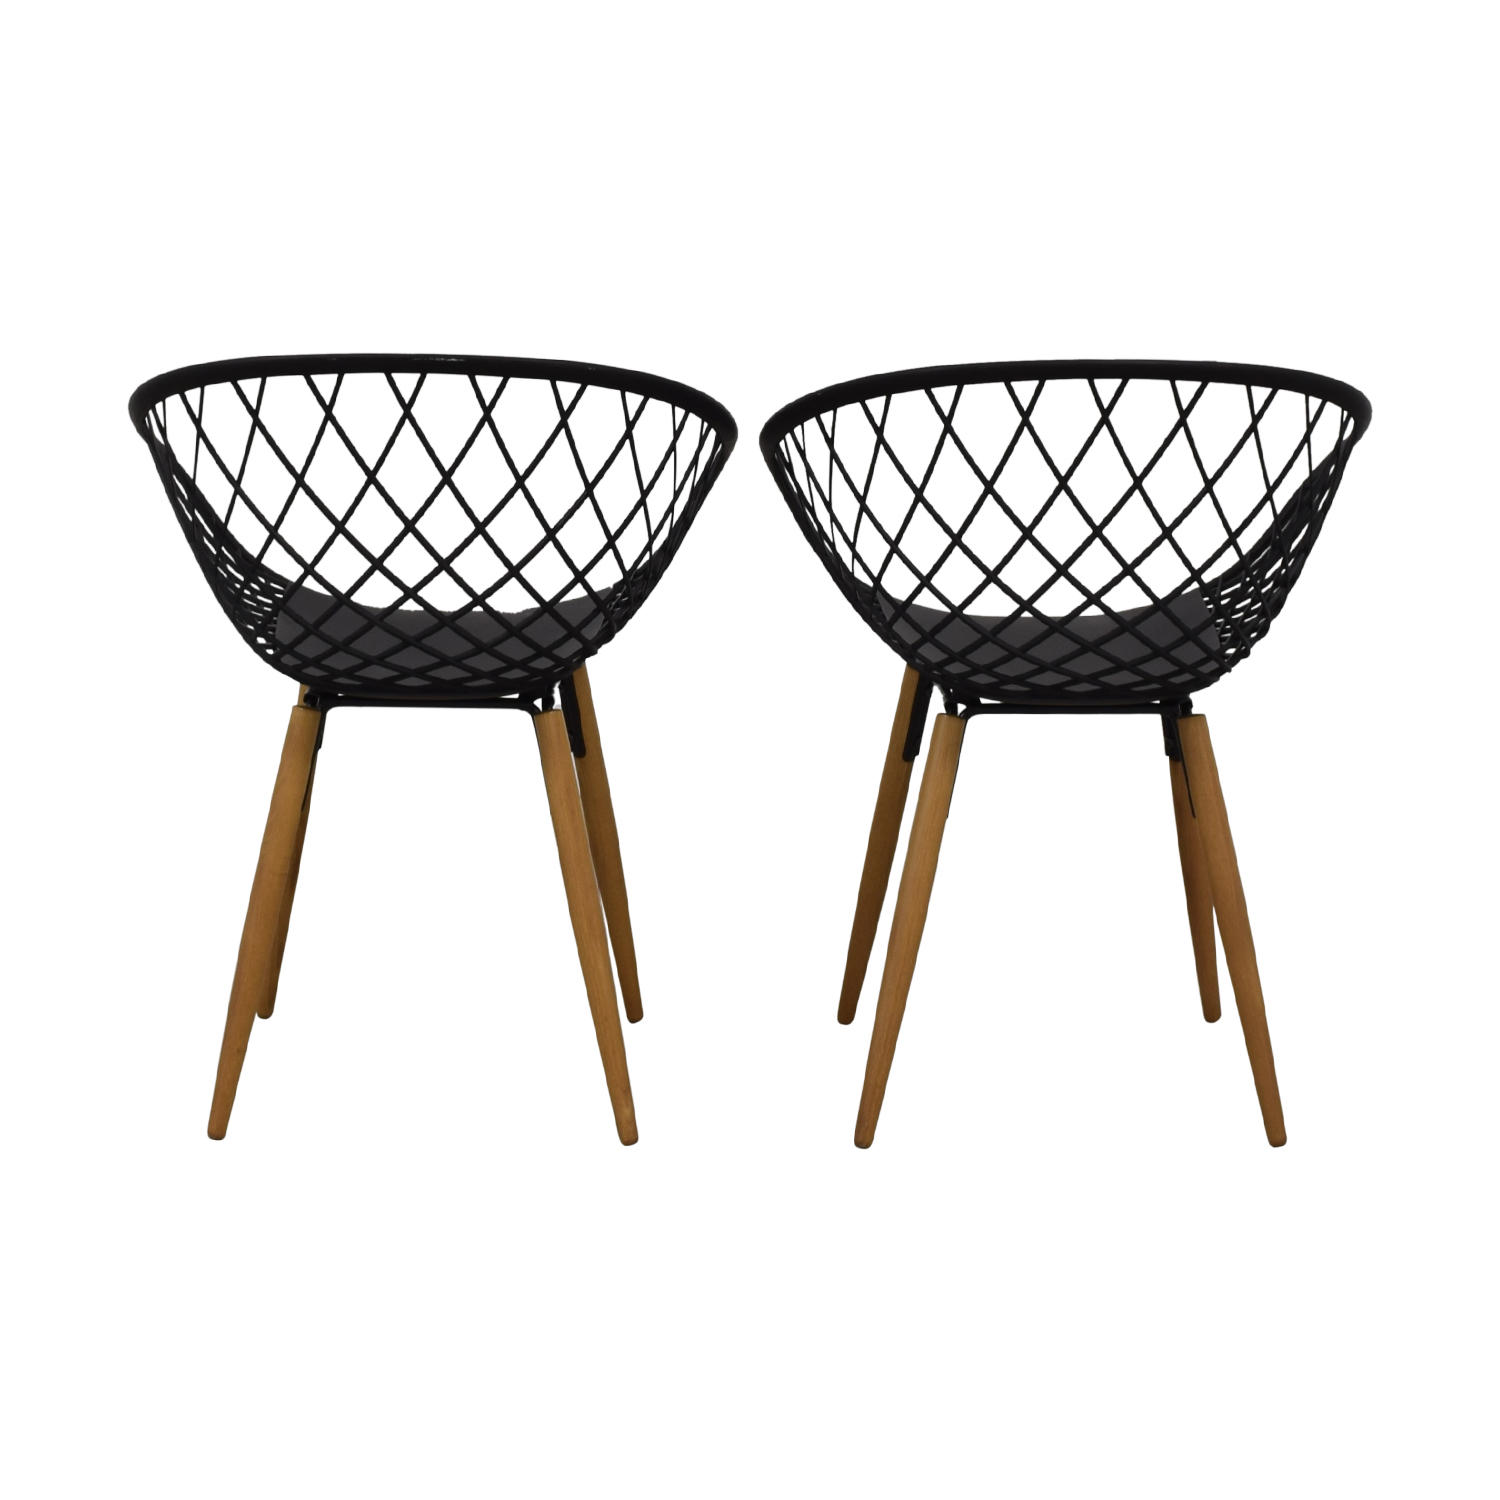 CB2 CB2 Sidera Black Chairs Accent Chairs